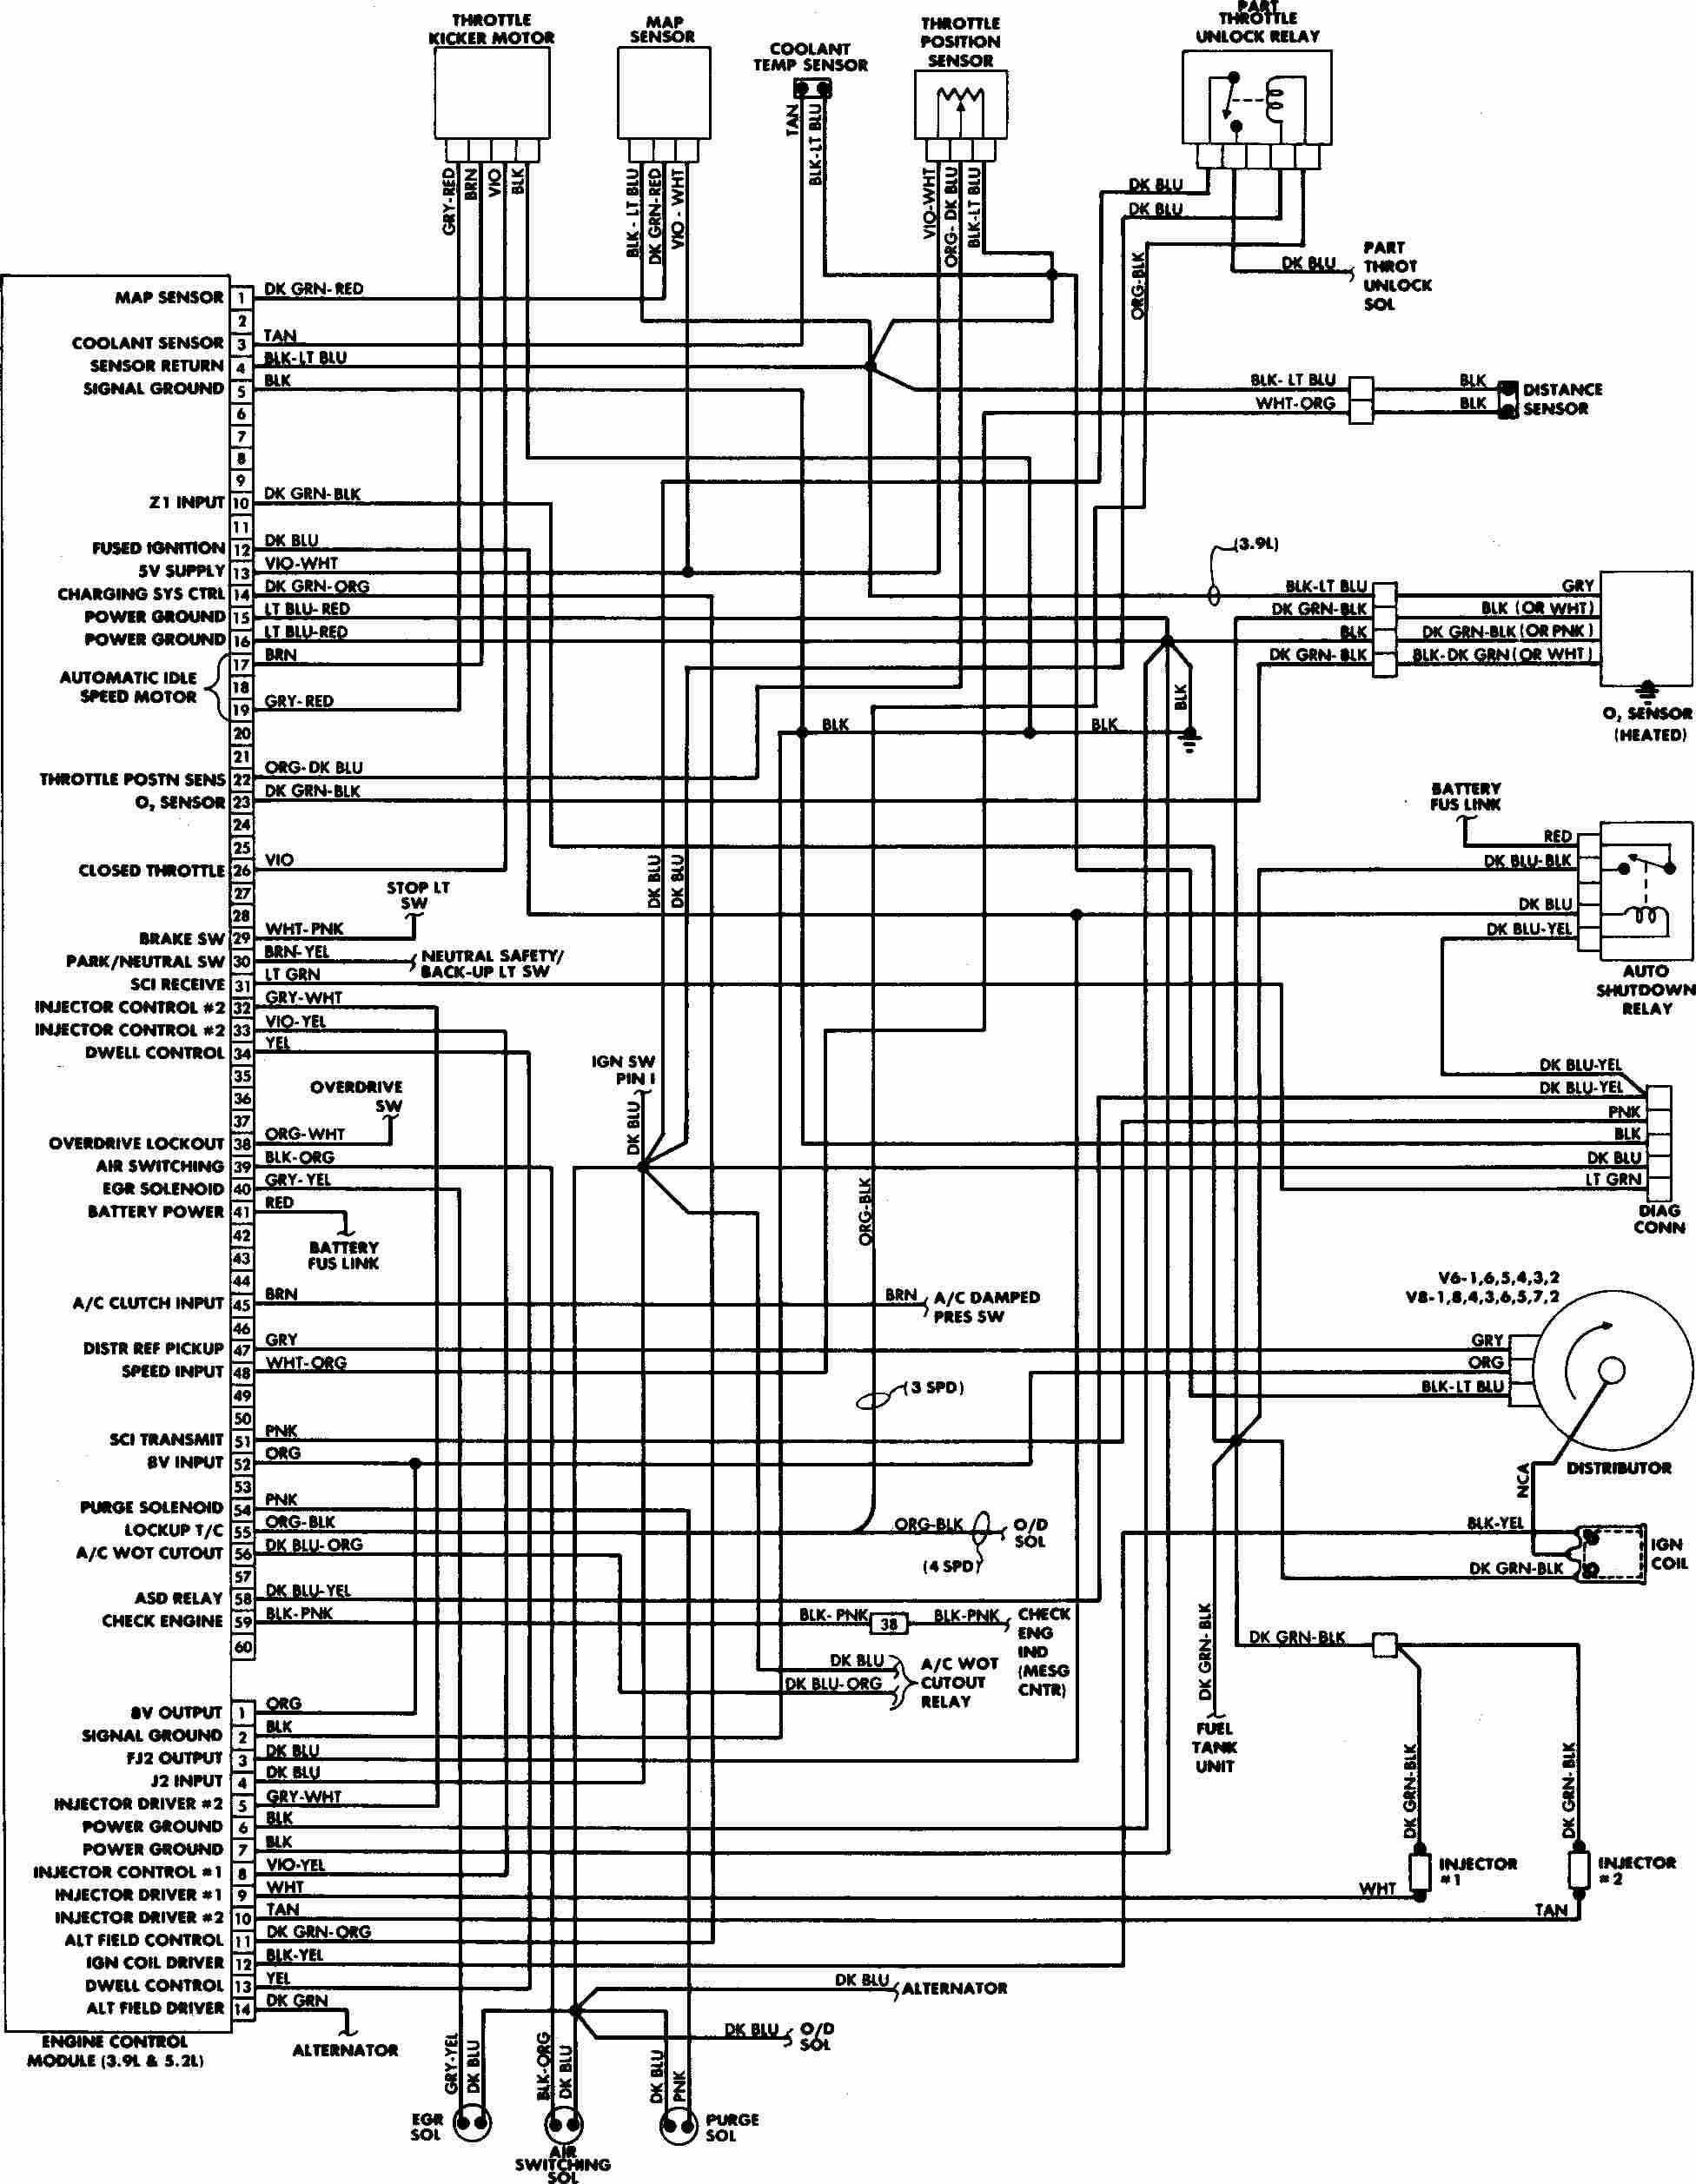 2003 dodge neon wiring diagram example electrical circuit \u2022 2004 dodge neon wiring diagrams dodge neon engine diagram alternator get free image about wiring rh ayseesra co 2003 dodge neon starter wiring diagram 2003 dodge neon ignition wiring